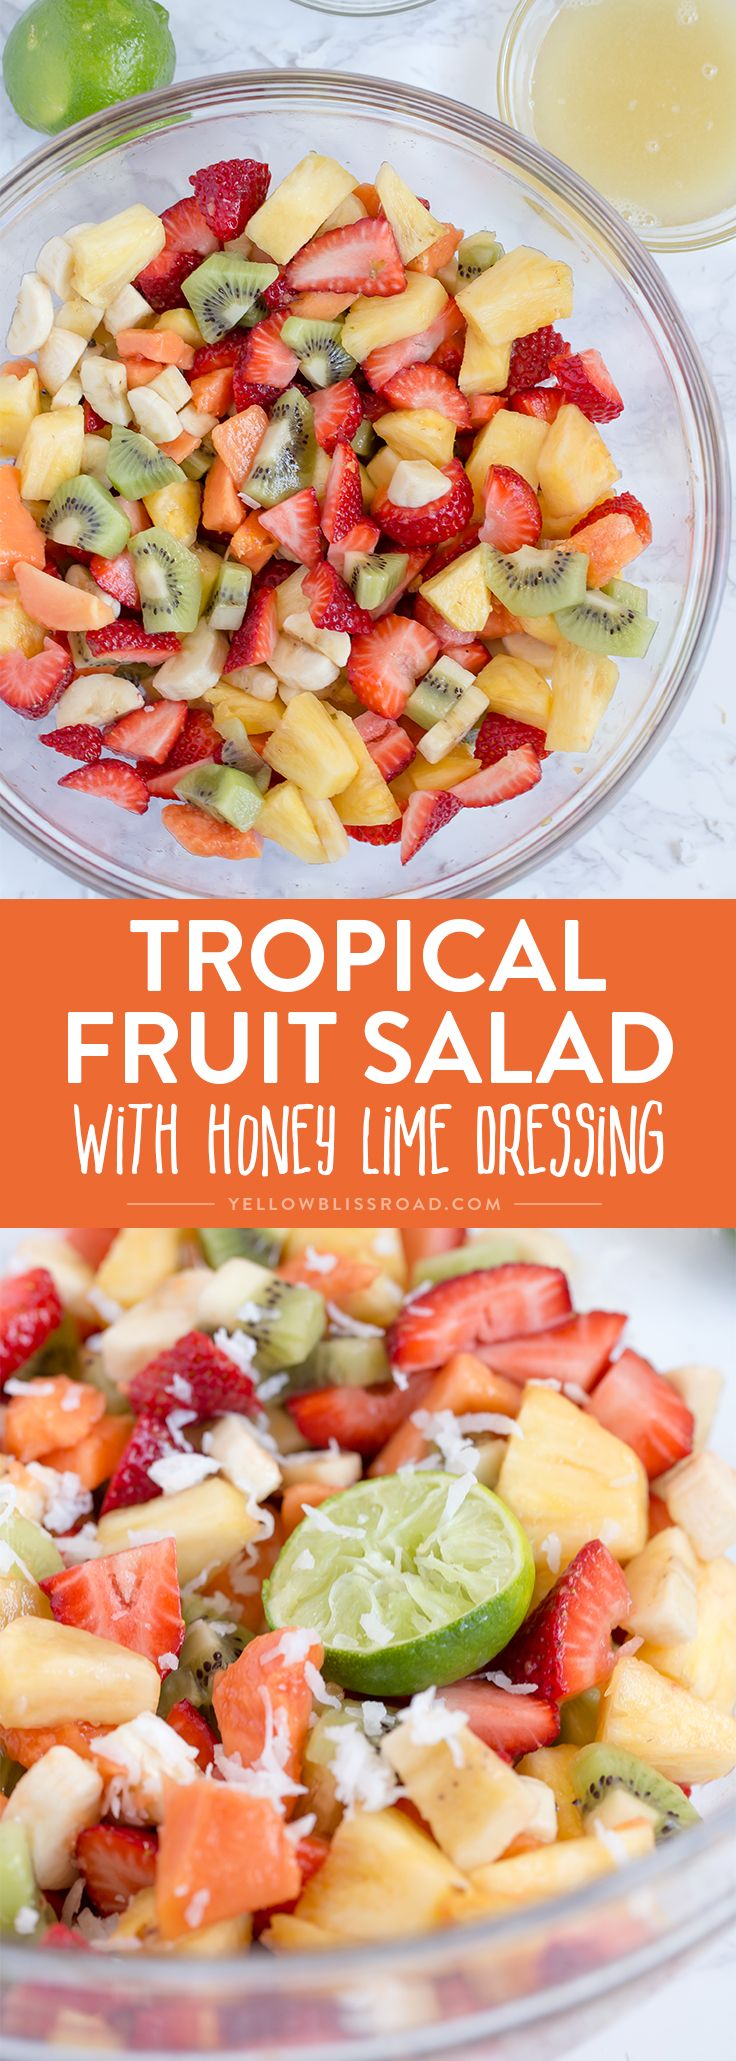 This Tropical Fruit Salad With Honey Lime Dressing Is The Light And  Refreshing And The Perfect